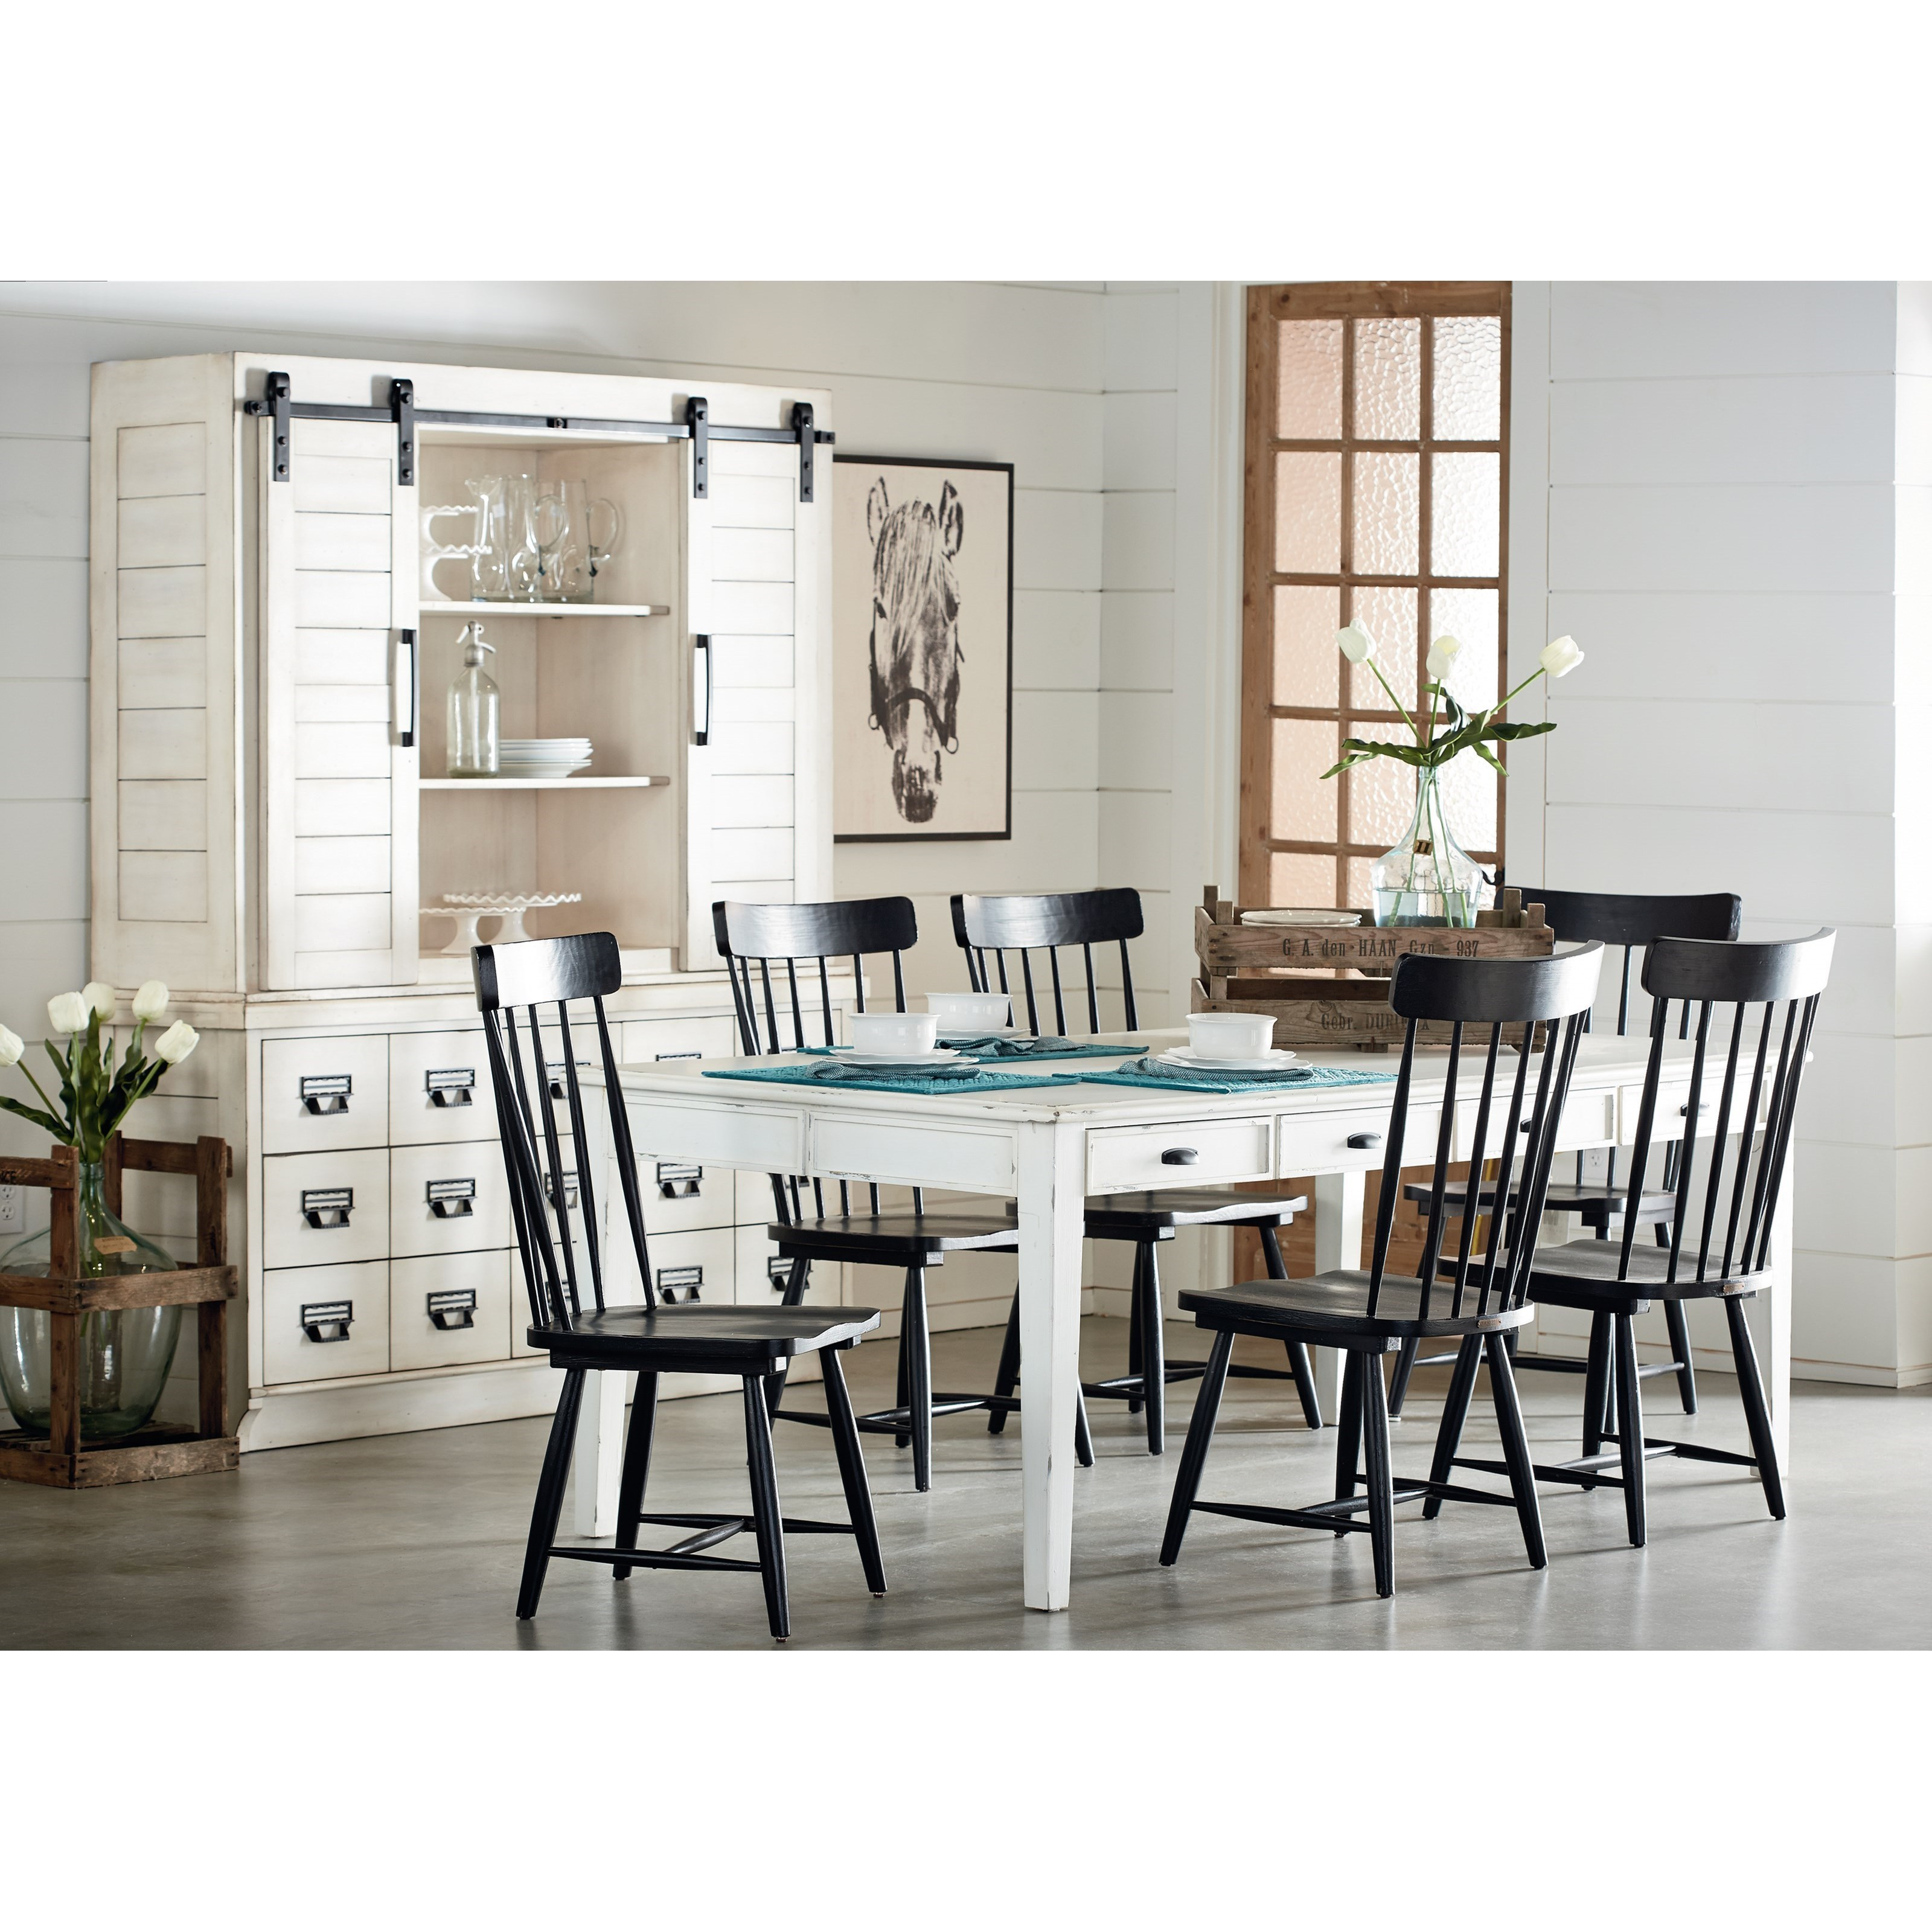 Magnolia Home by Joanna Gaines Farmhouse Kitchen Dining Group - Ivan Smith Furniture - Casual ...